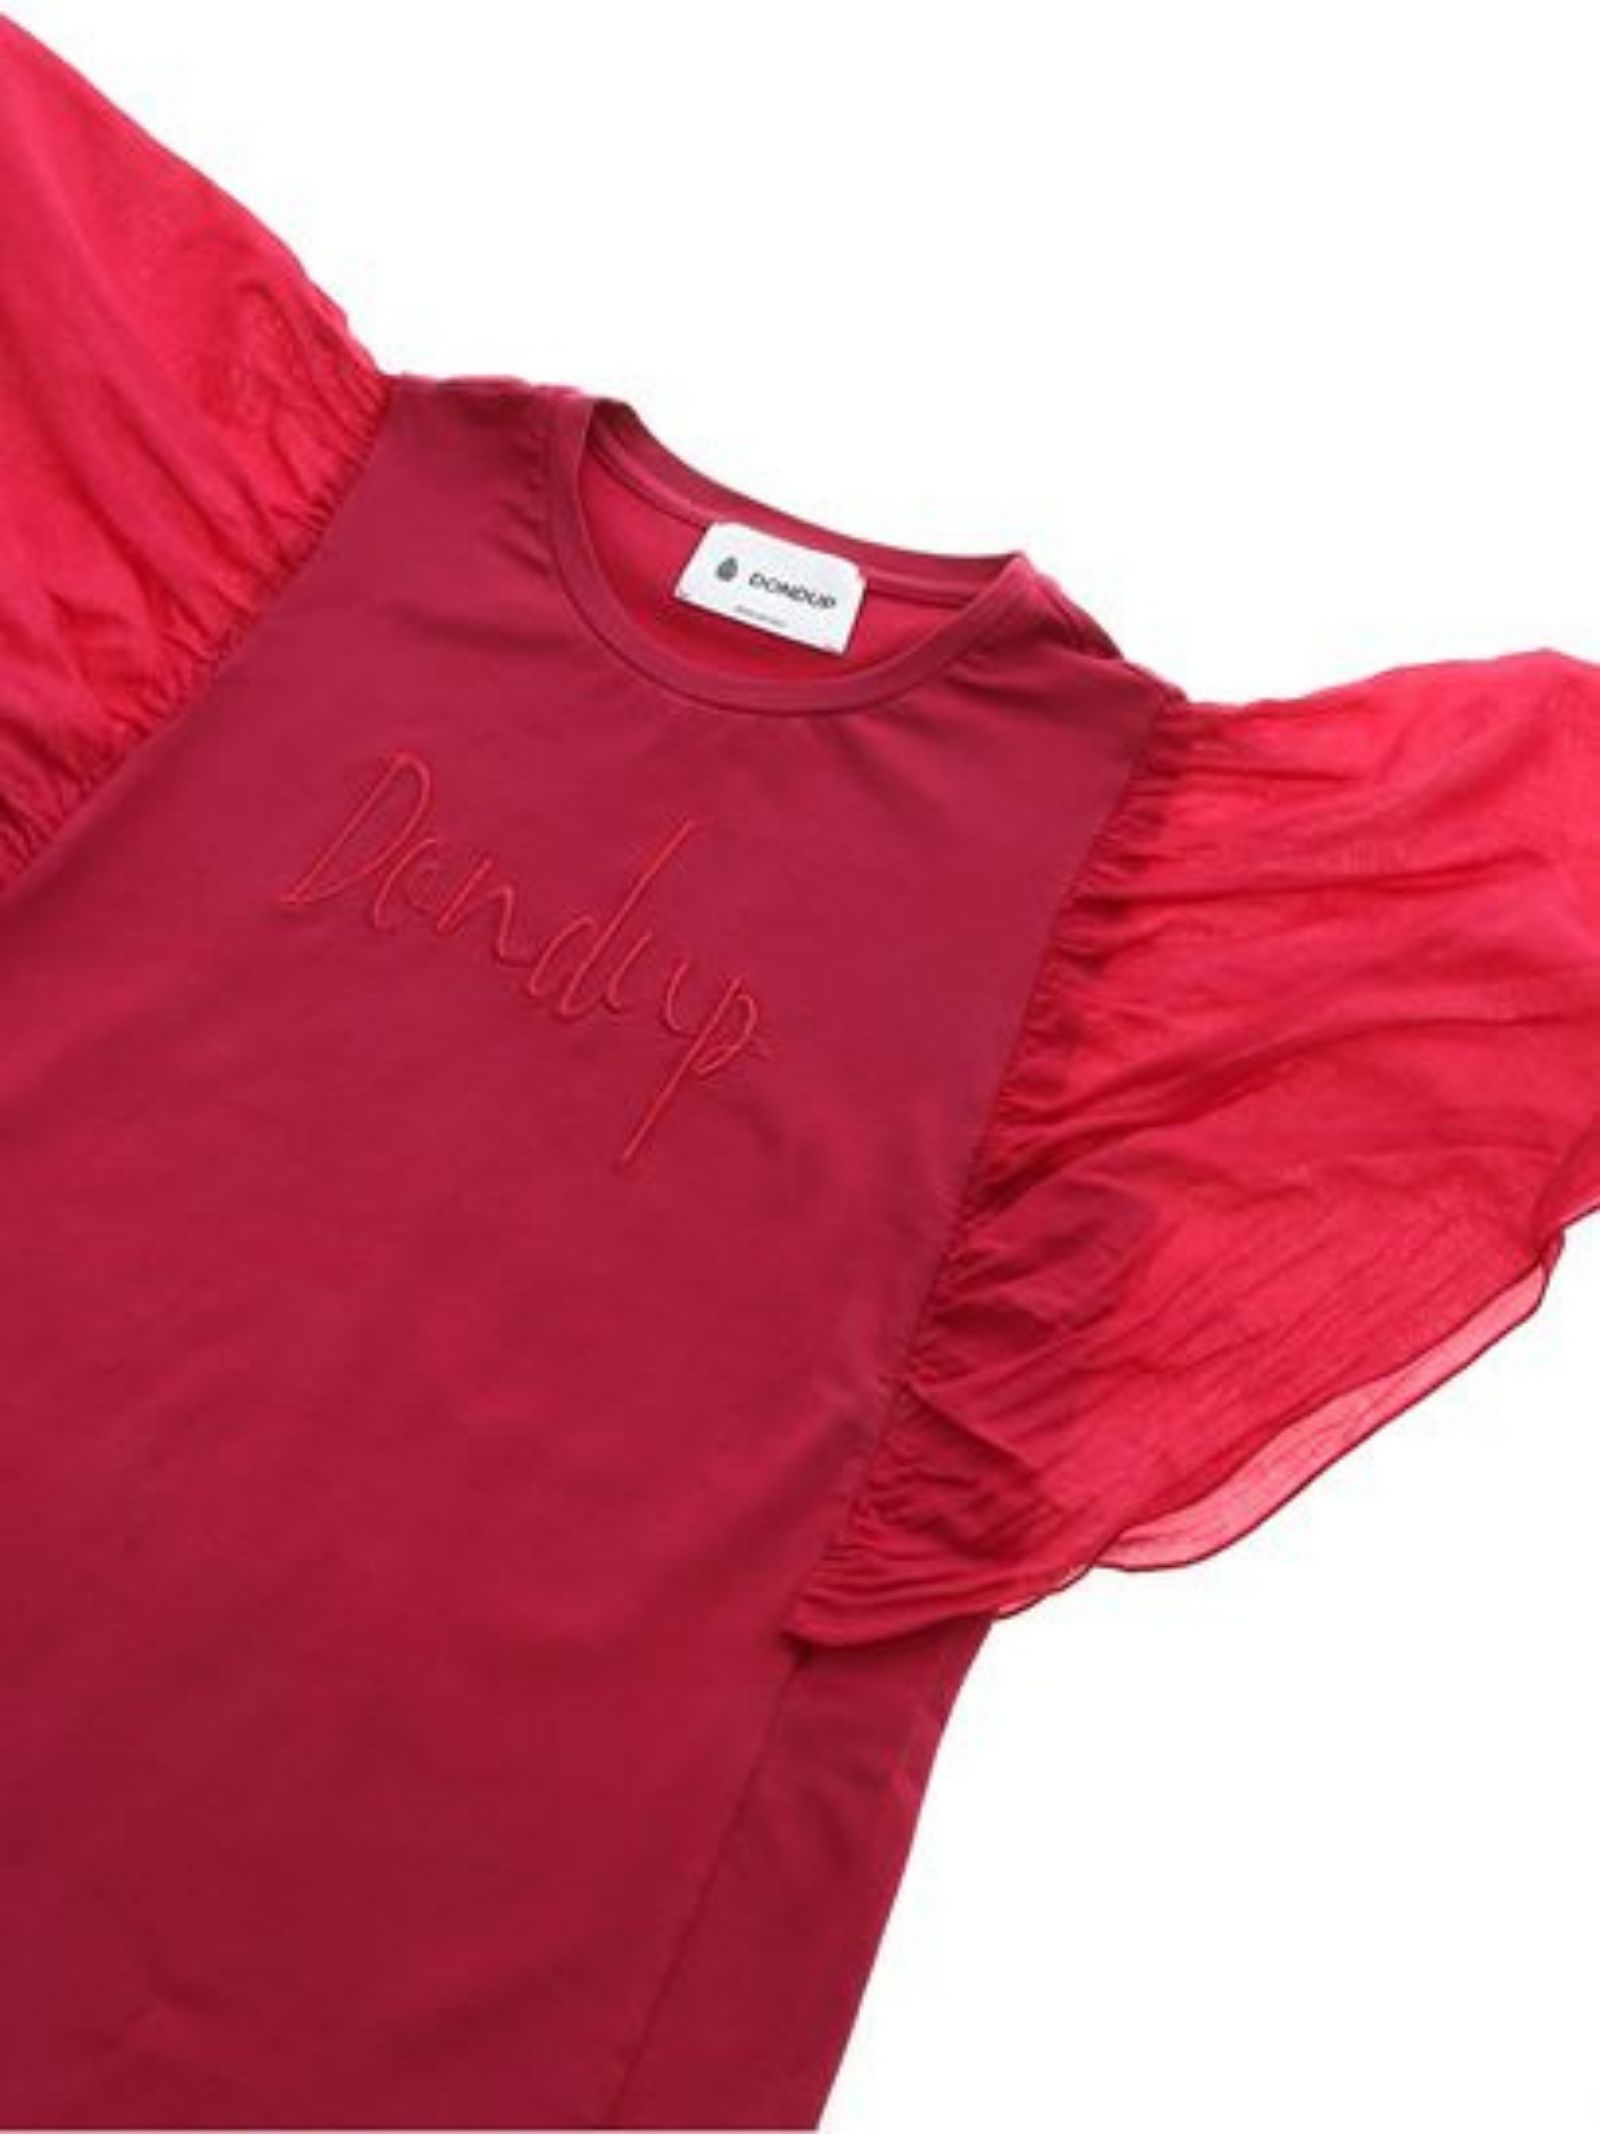 Dondup | T-shirt | DFTS63 JE174 WD0043003